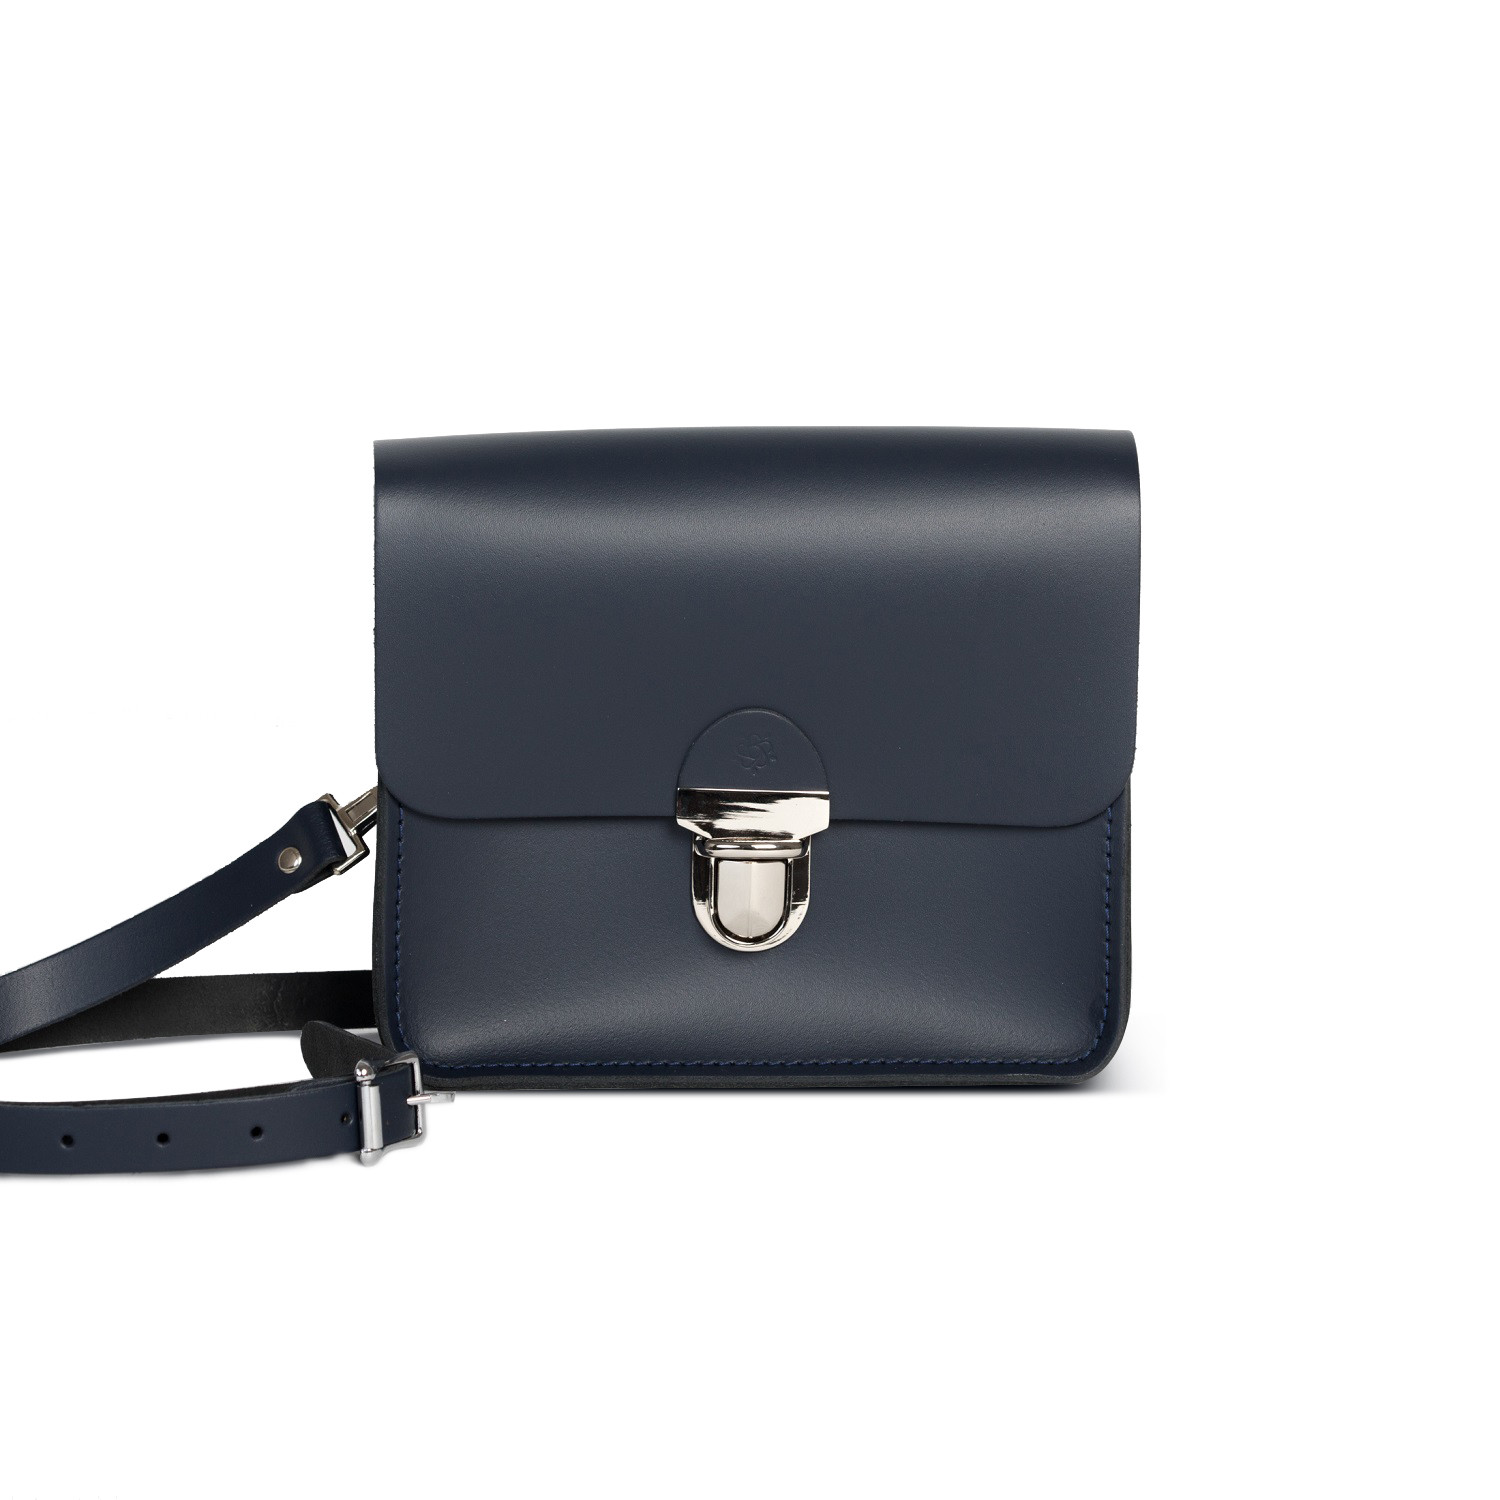 Sofia Premium Leather Crossbody Bag in Navy Blue